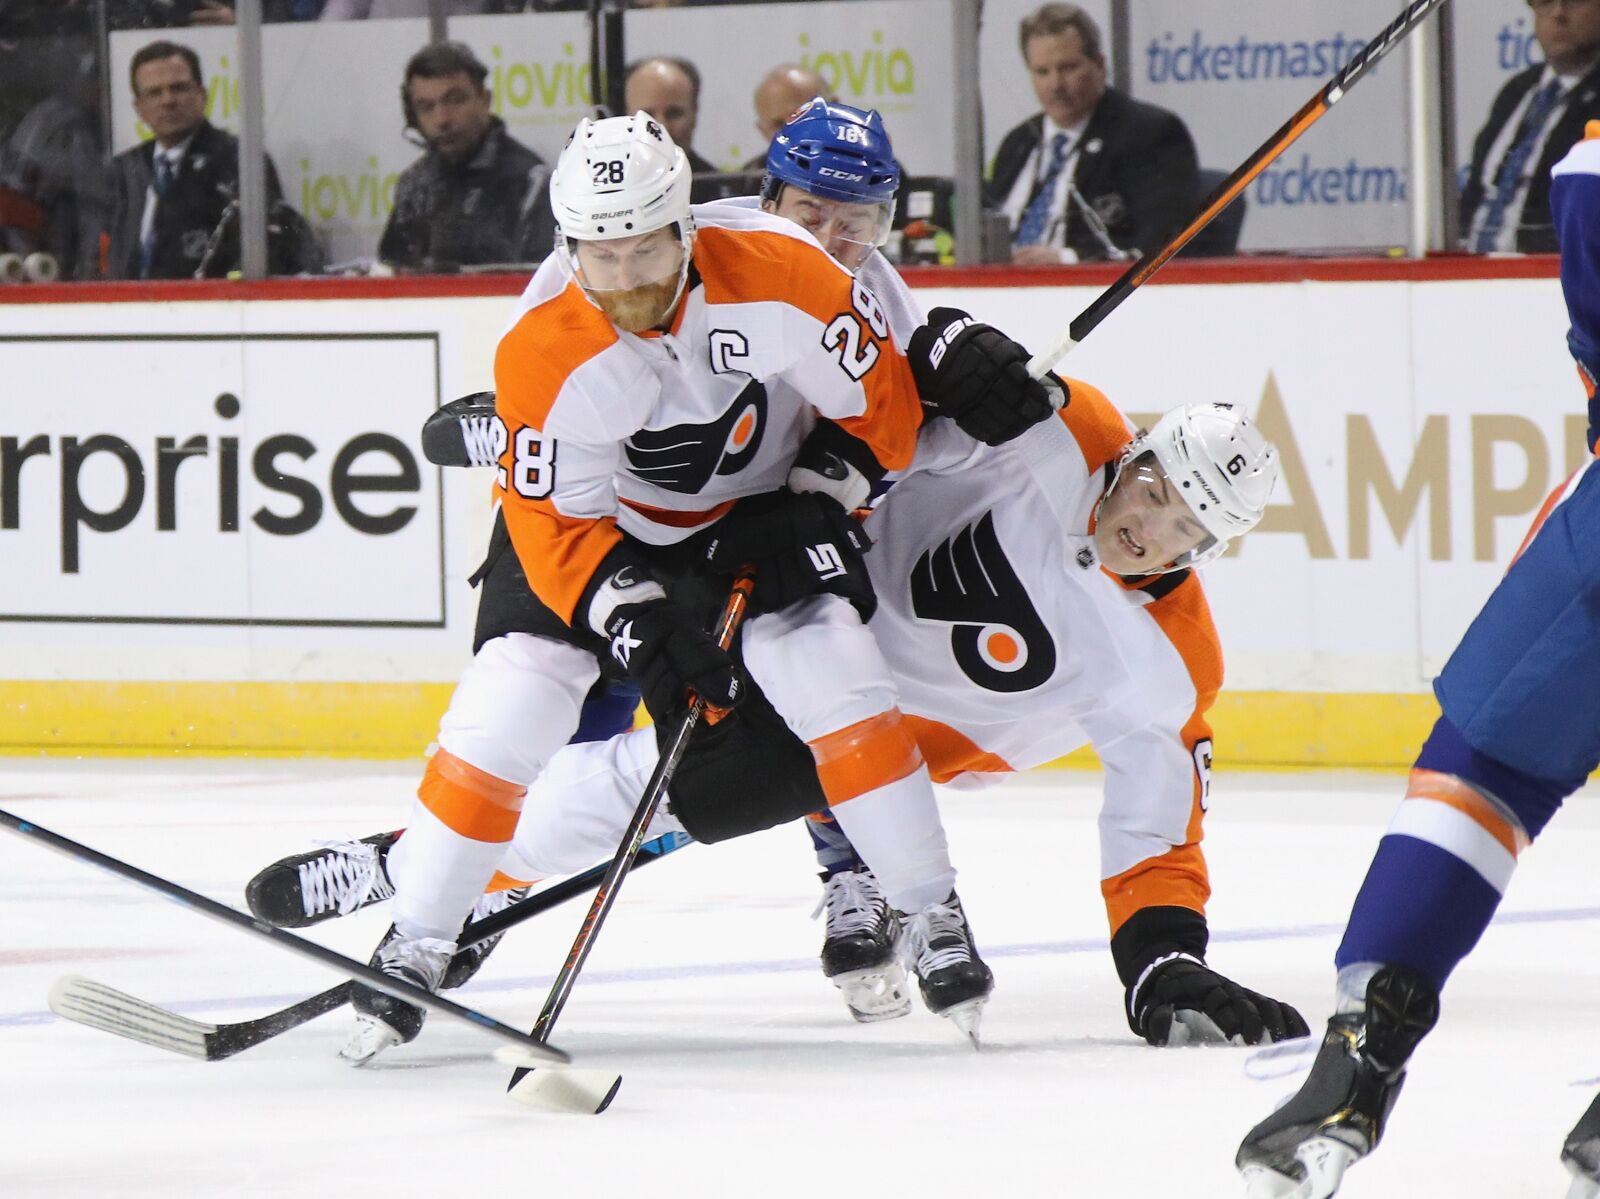 Weekly Buzz: An Average Week Of Hockey For The Flyers